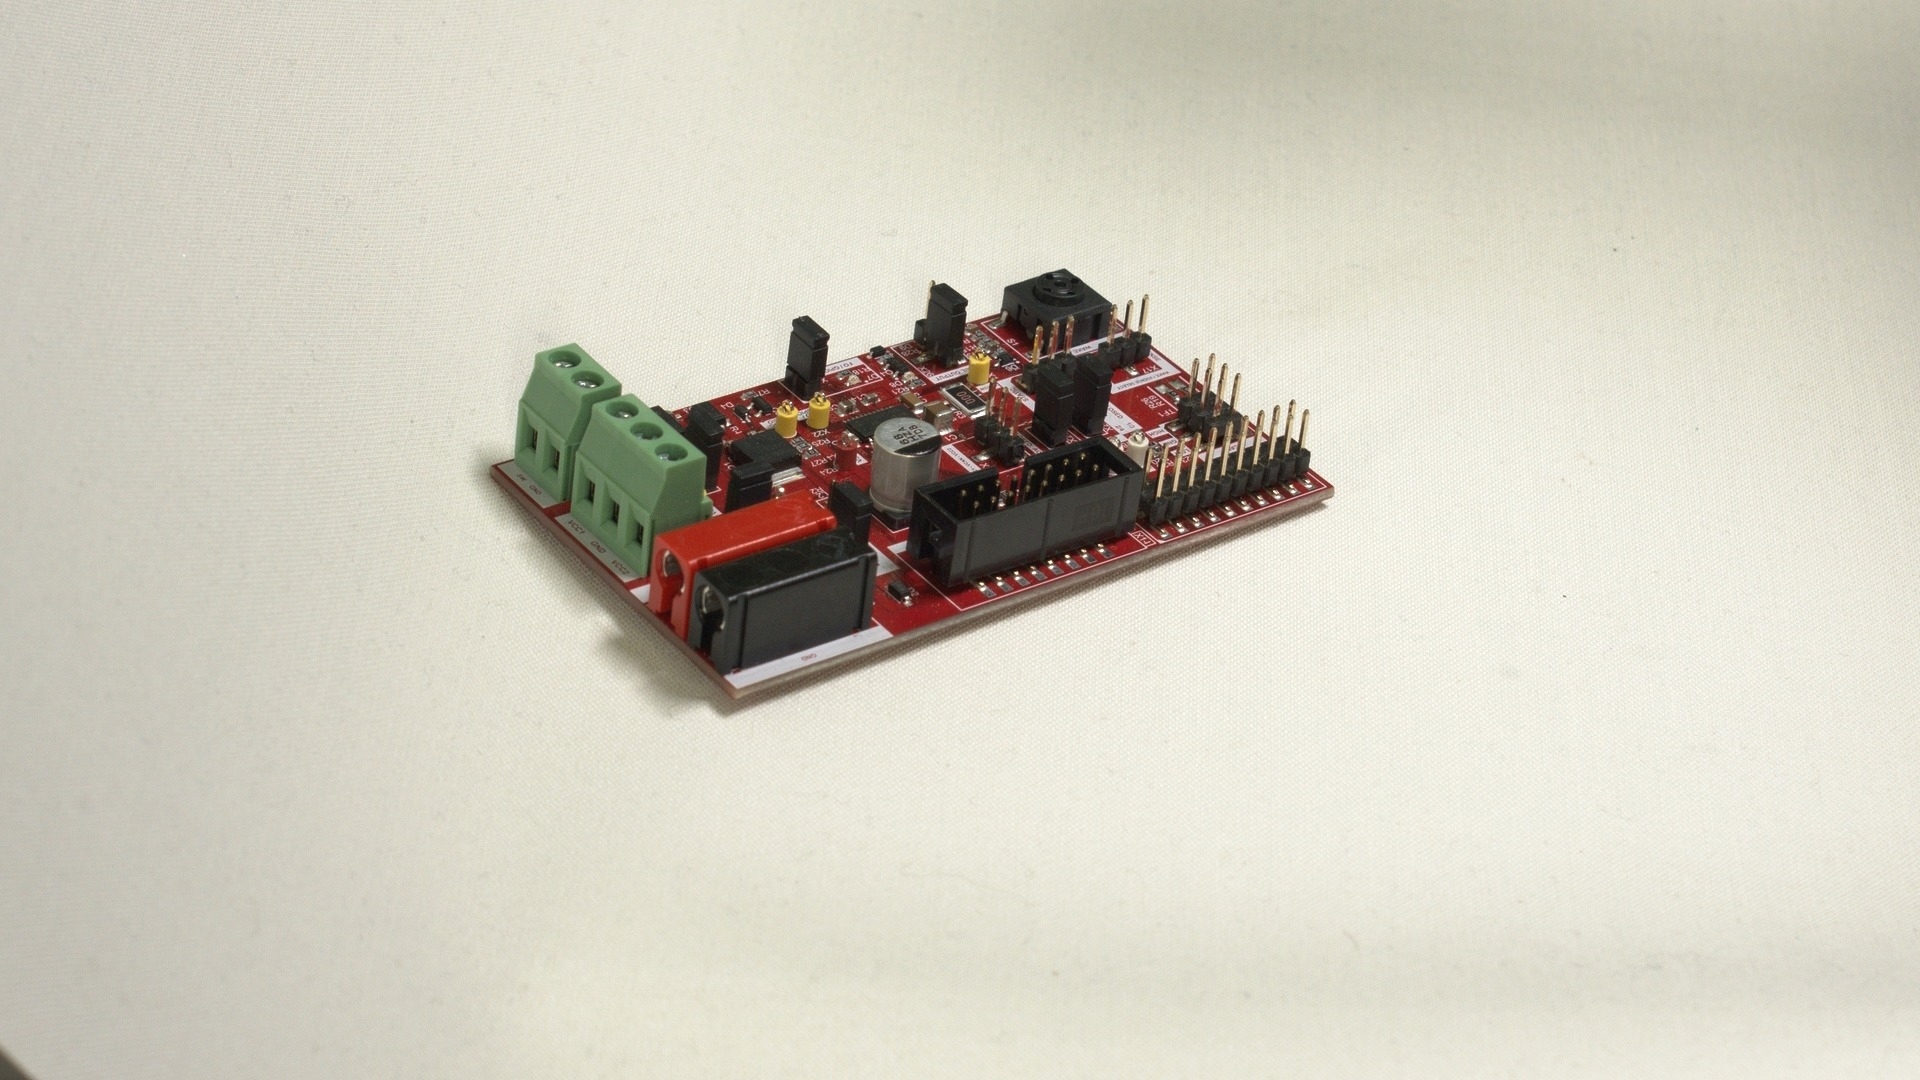 Unboxing of the Infineon Lite SBC TLE9461/71 Evaluation Board